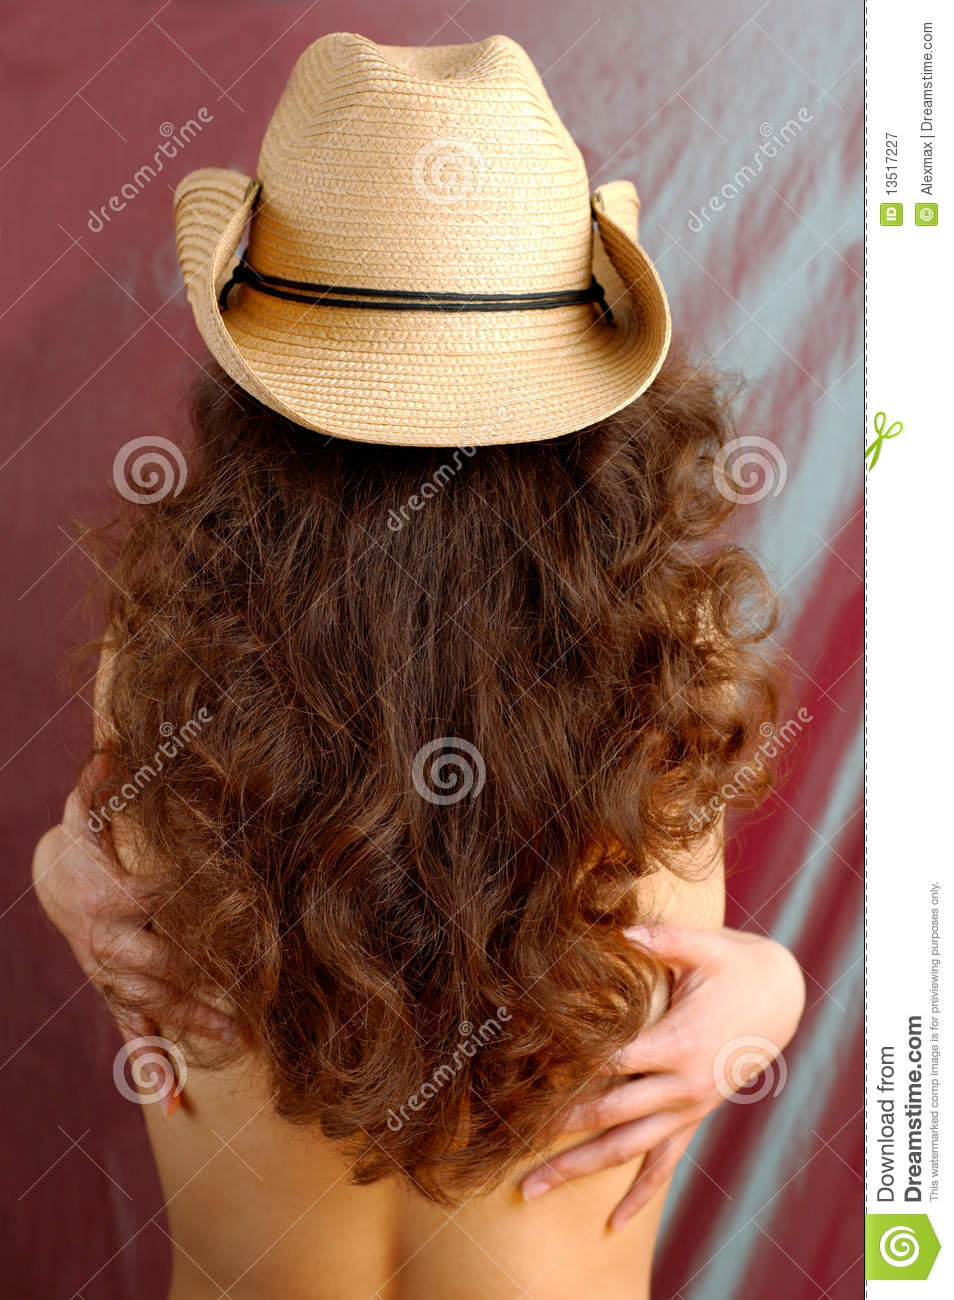 Download Woman in a Cowboy Hat stock image. Image of long, curly - 13517227